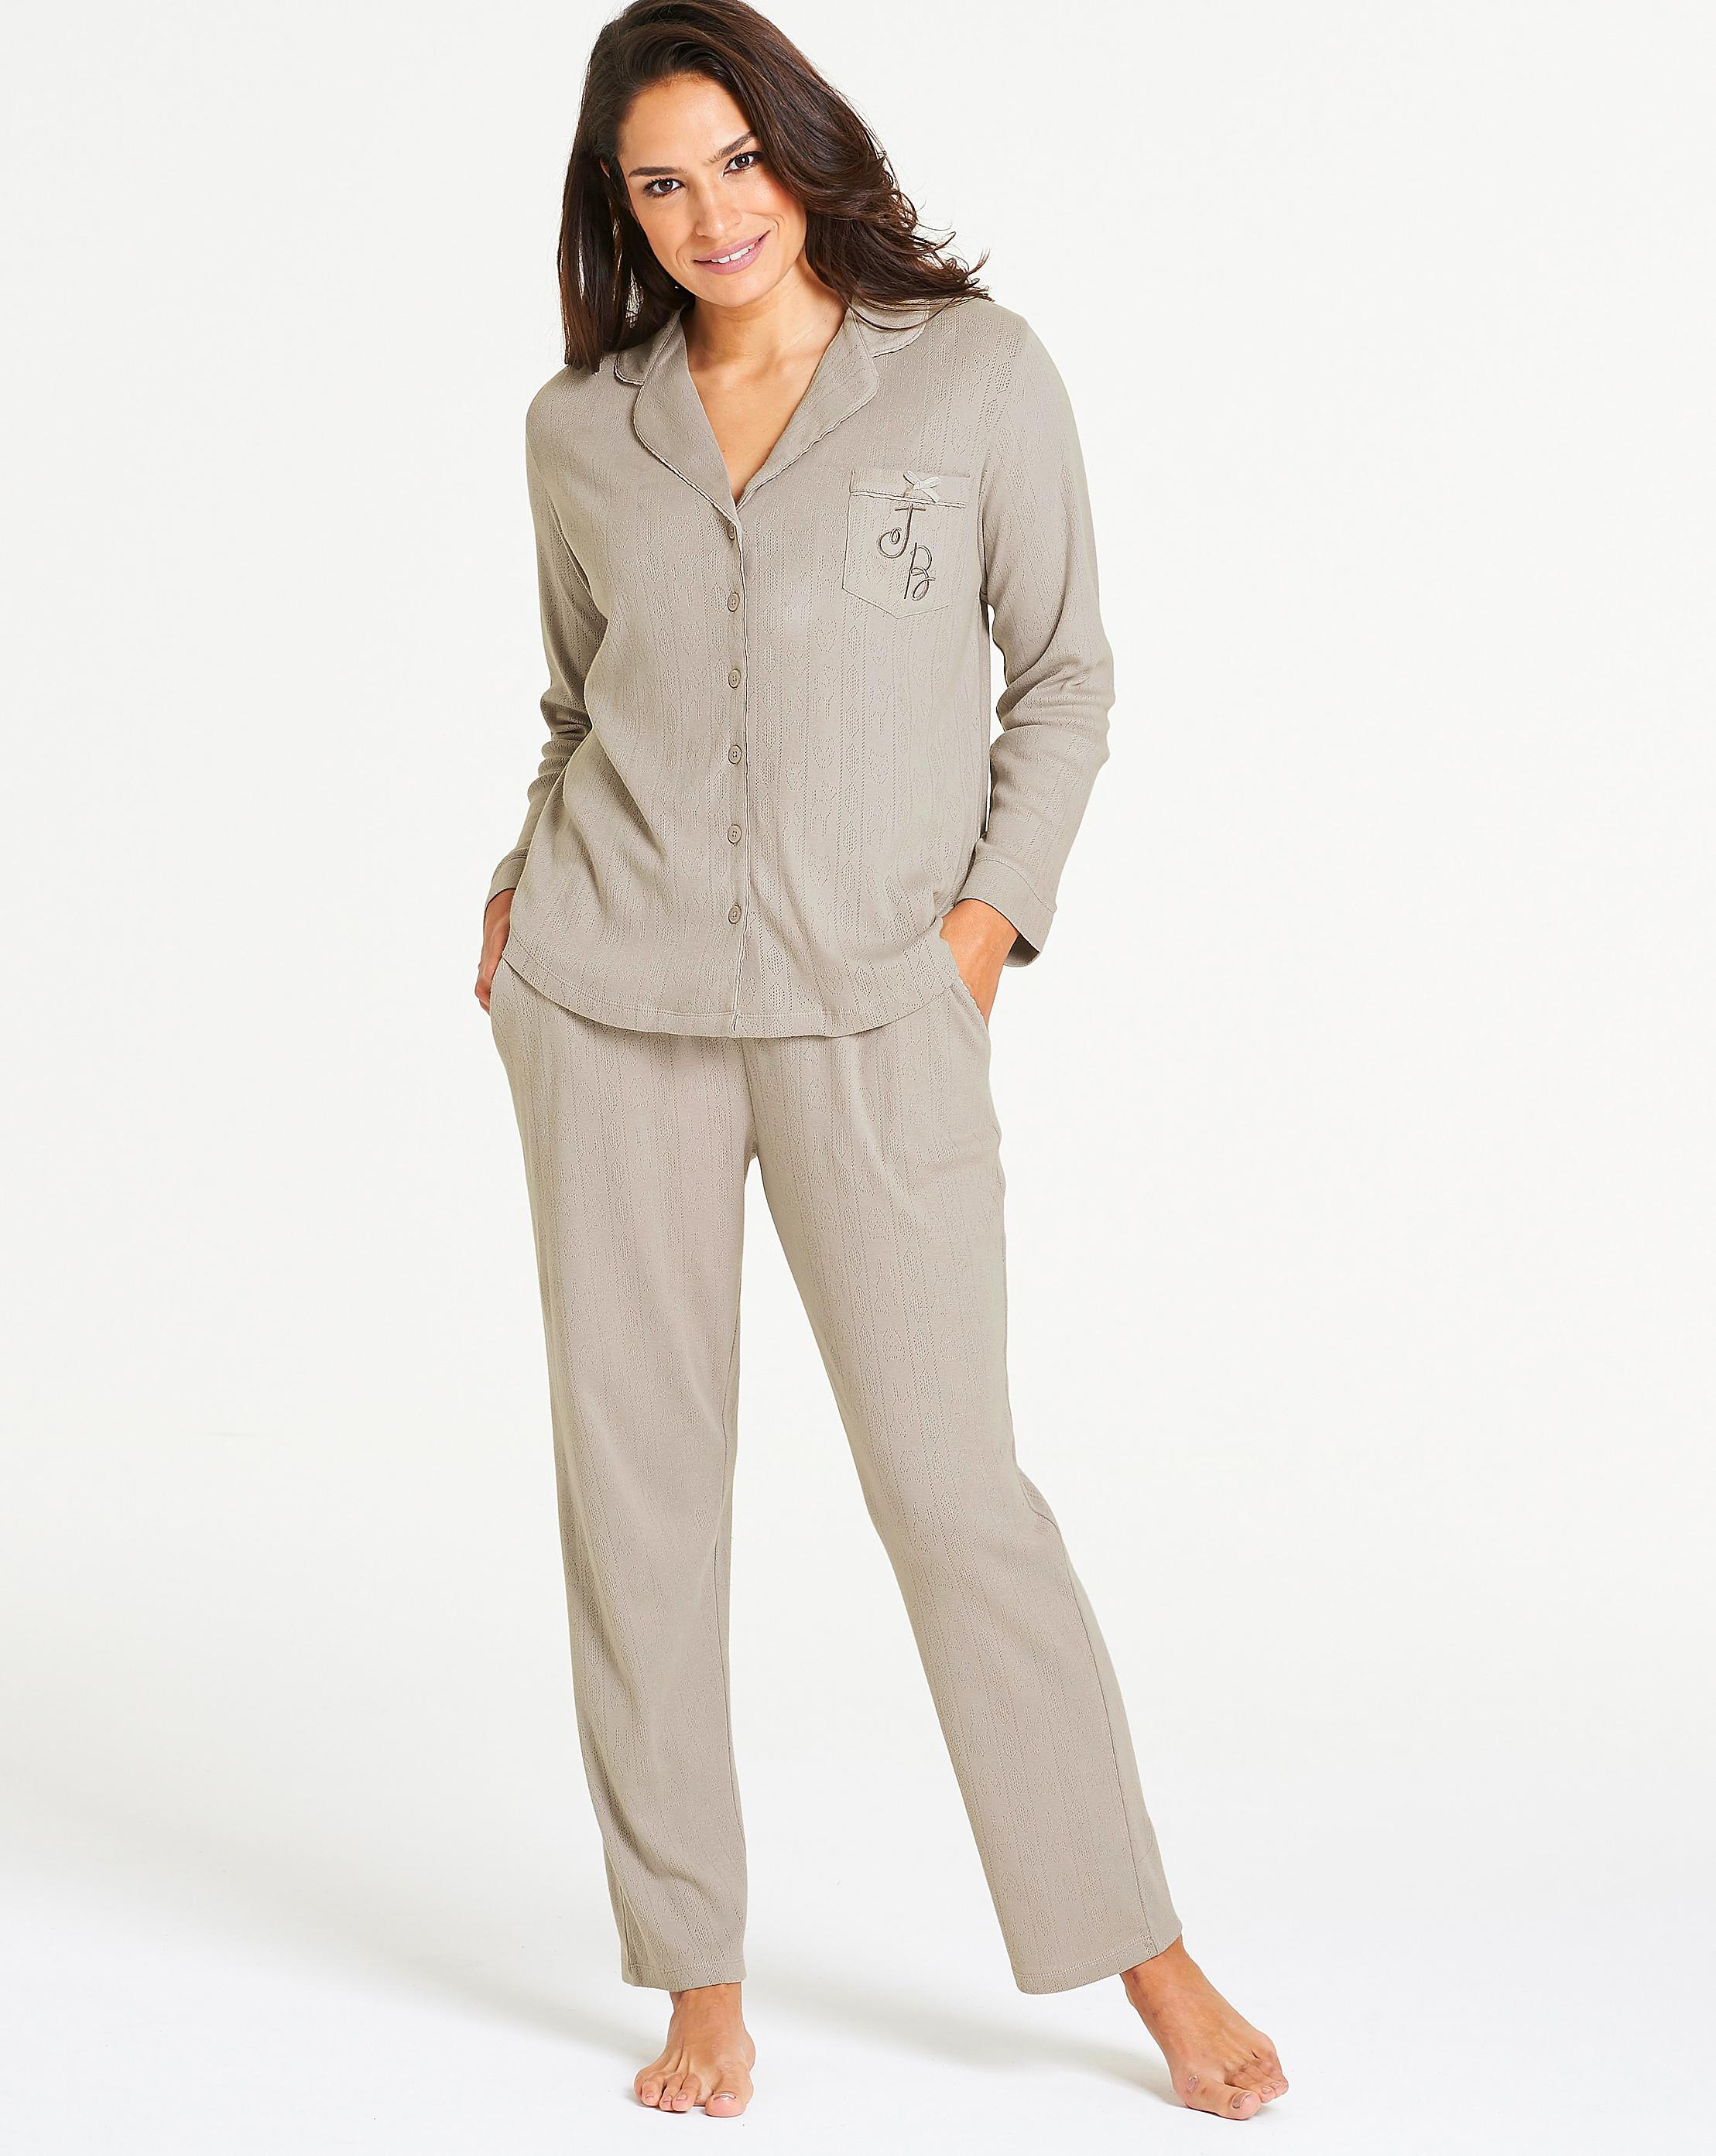 Lyst - Simply Be Joe Browns Pointelle Button Down Pj Set in Gray e76aaabf1